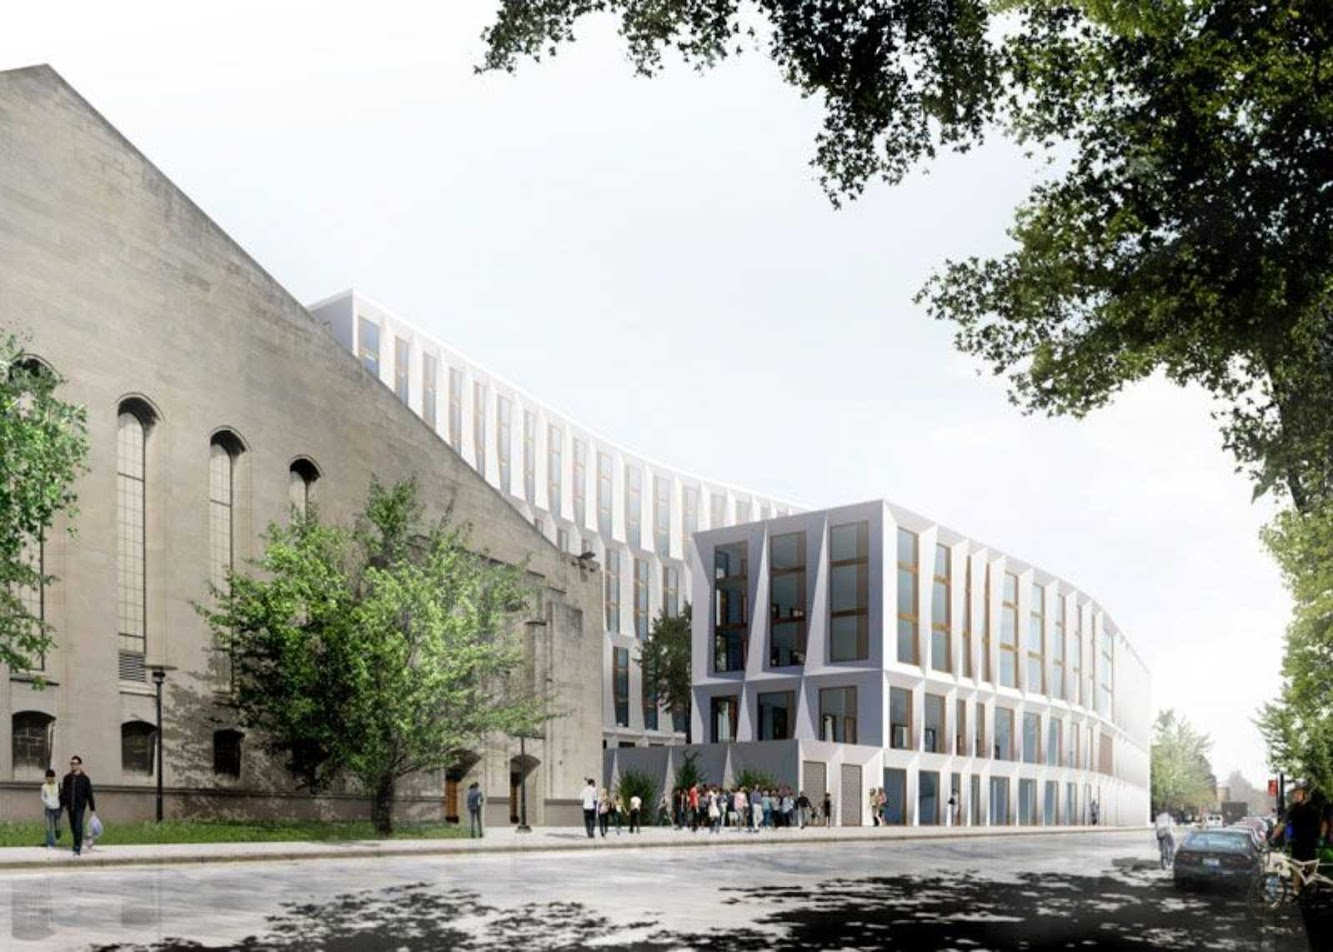 Residence Hall for University of Chicago by Studio